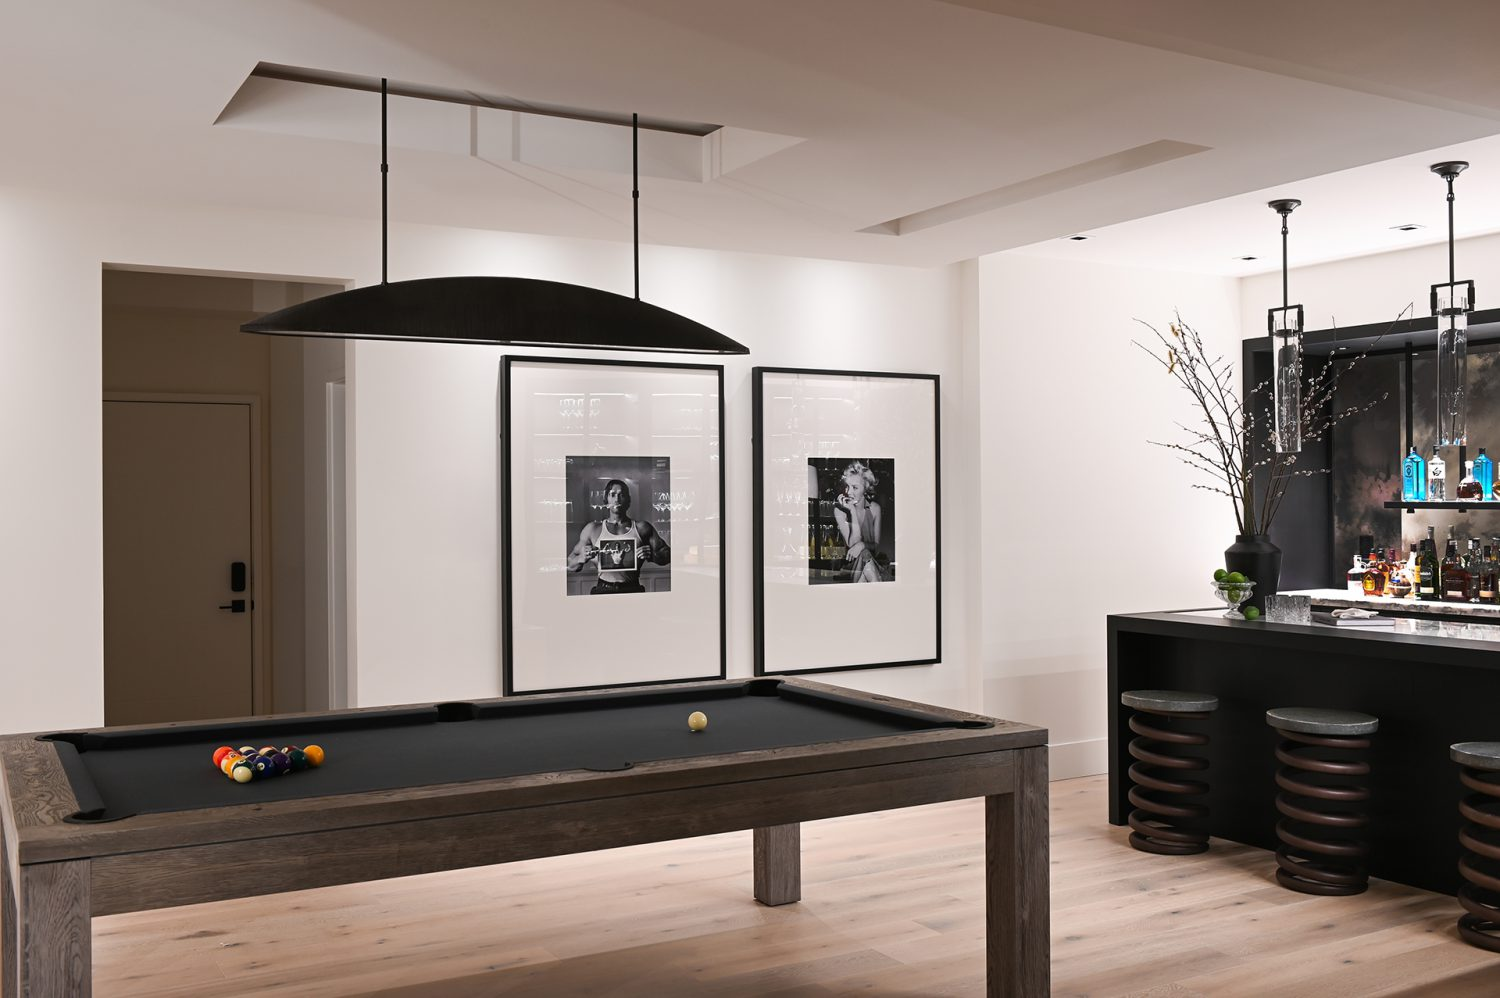 Ferme Moderne pool table and basement rec area designed by Midland Premium Properties in Vancouver, BC